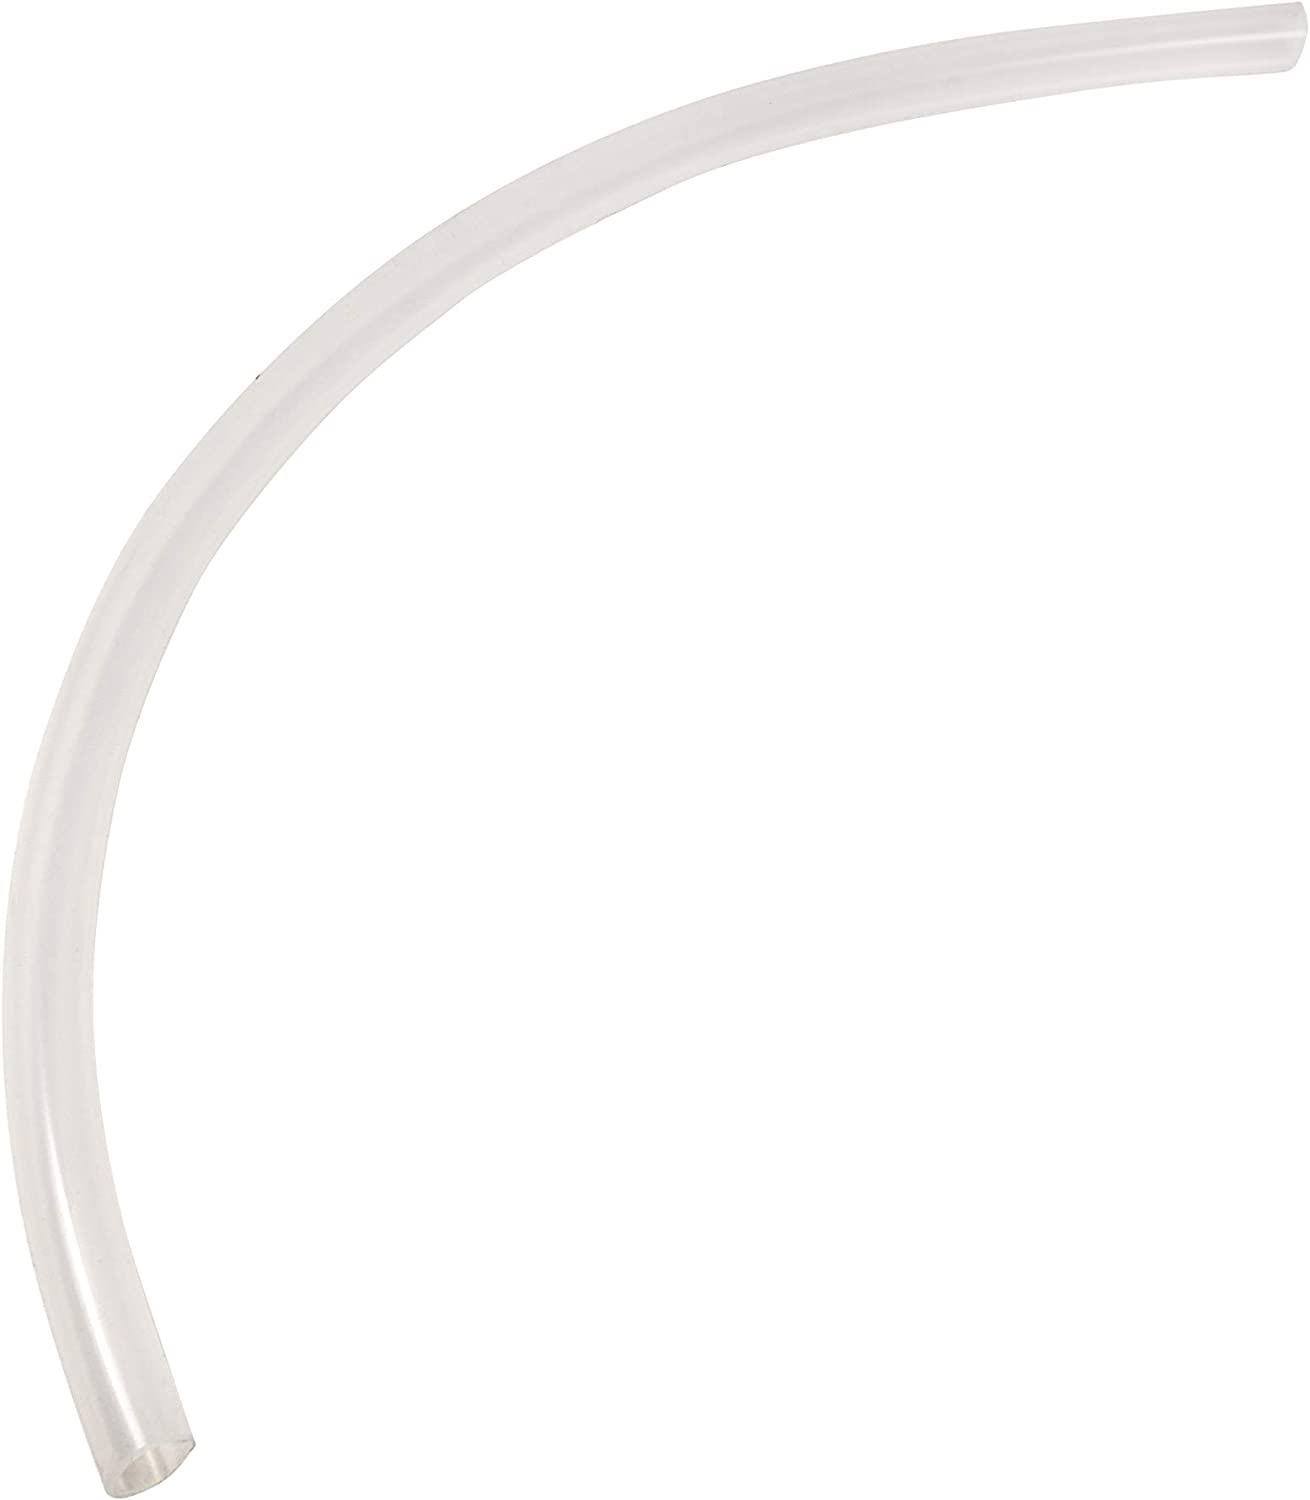 Univen High Temp Food Grade Clear Excellent ID Silicone Tubing X 13mm 5% OFF 9mm